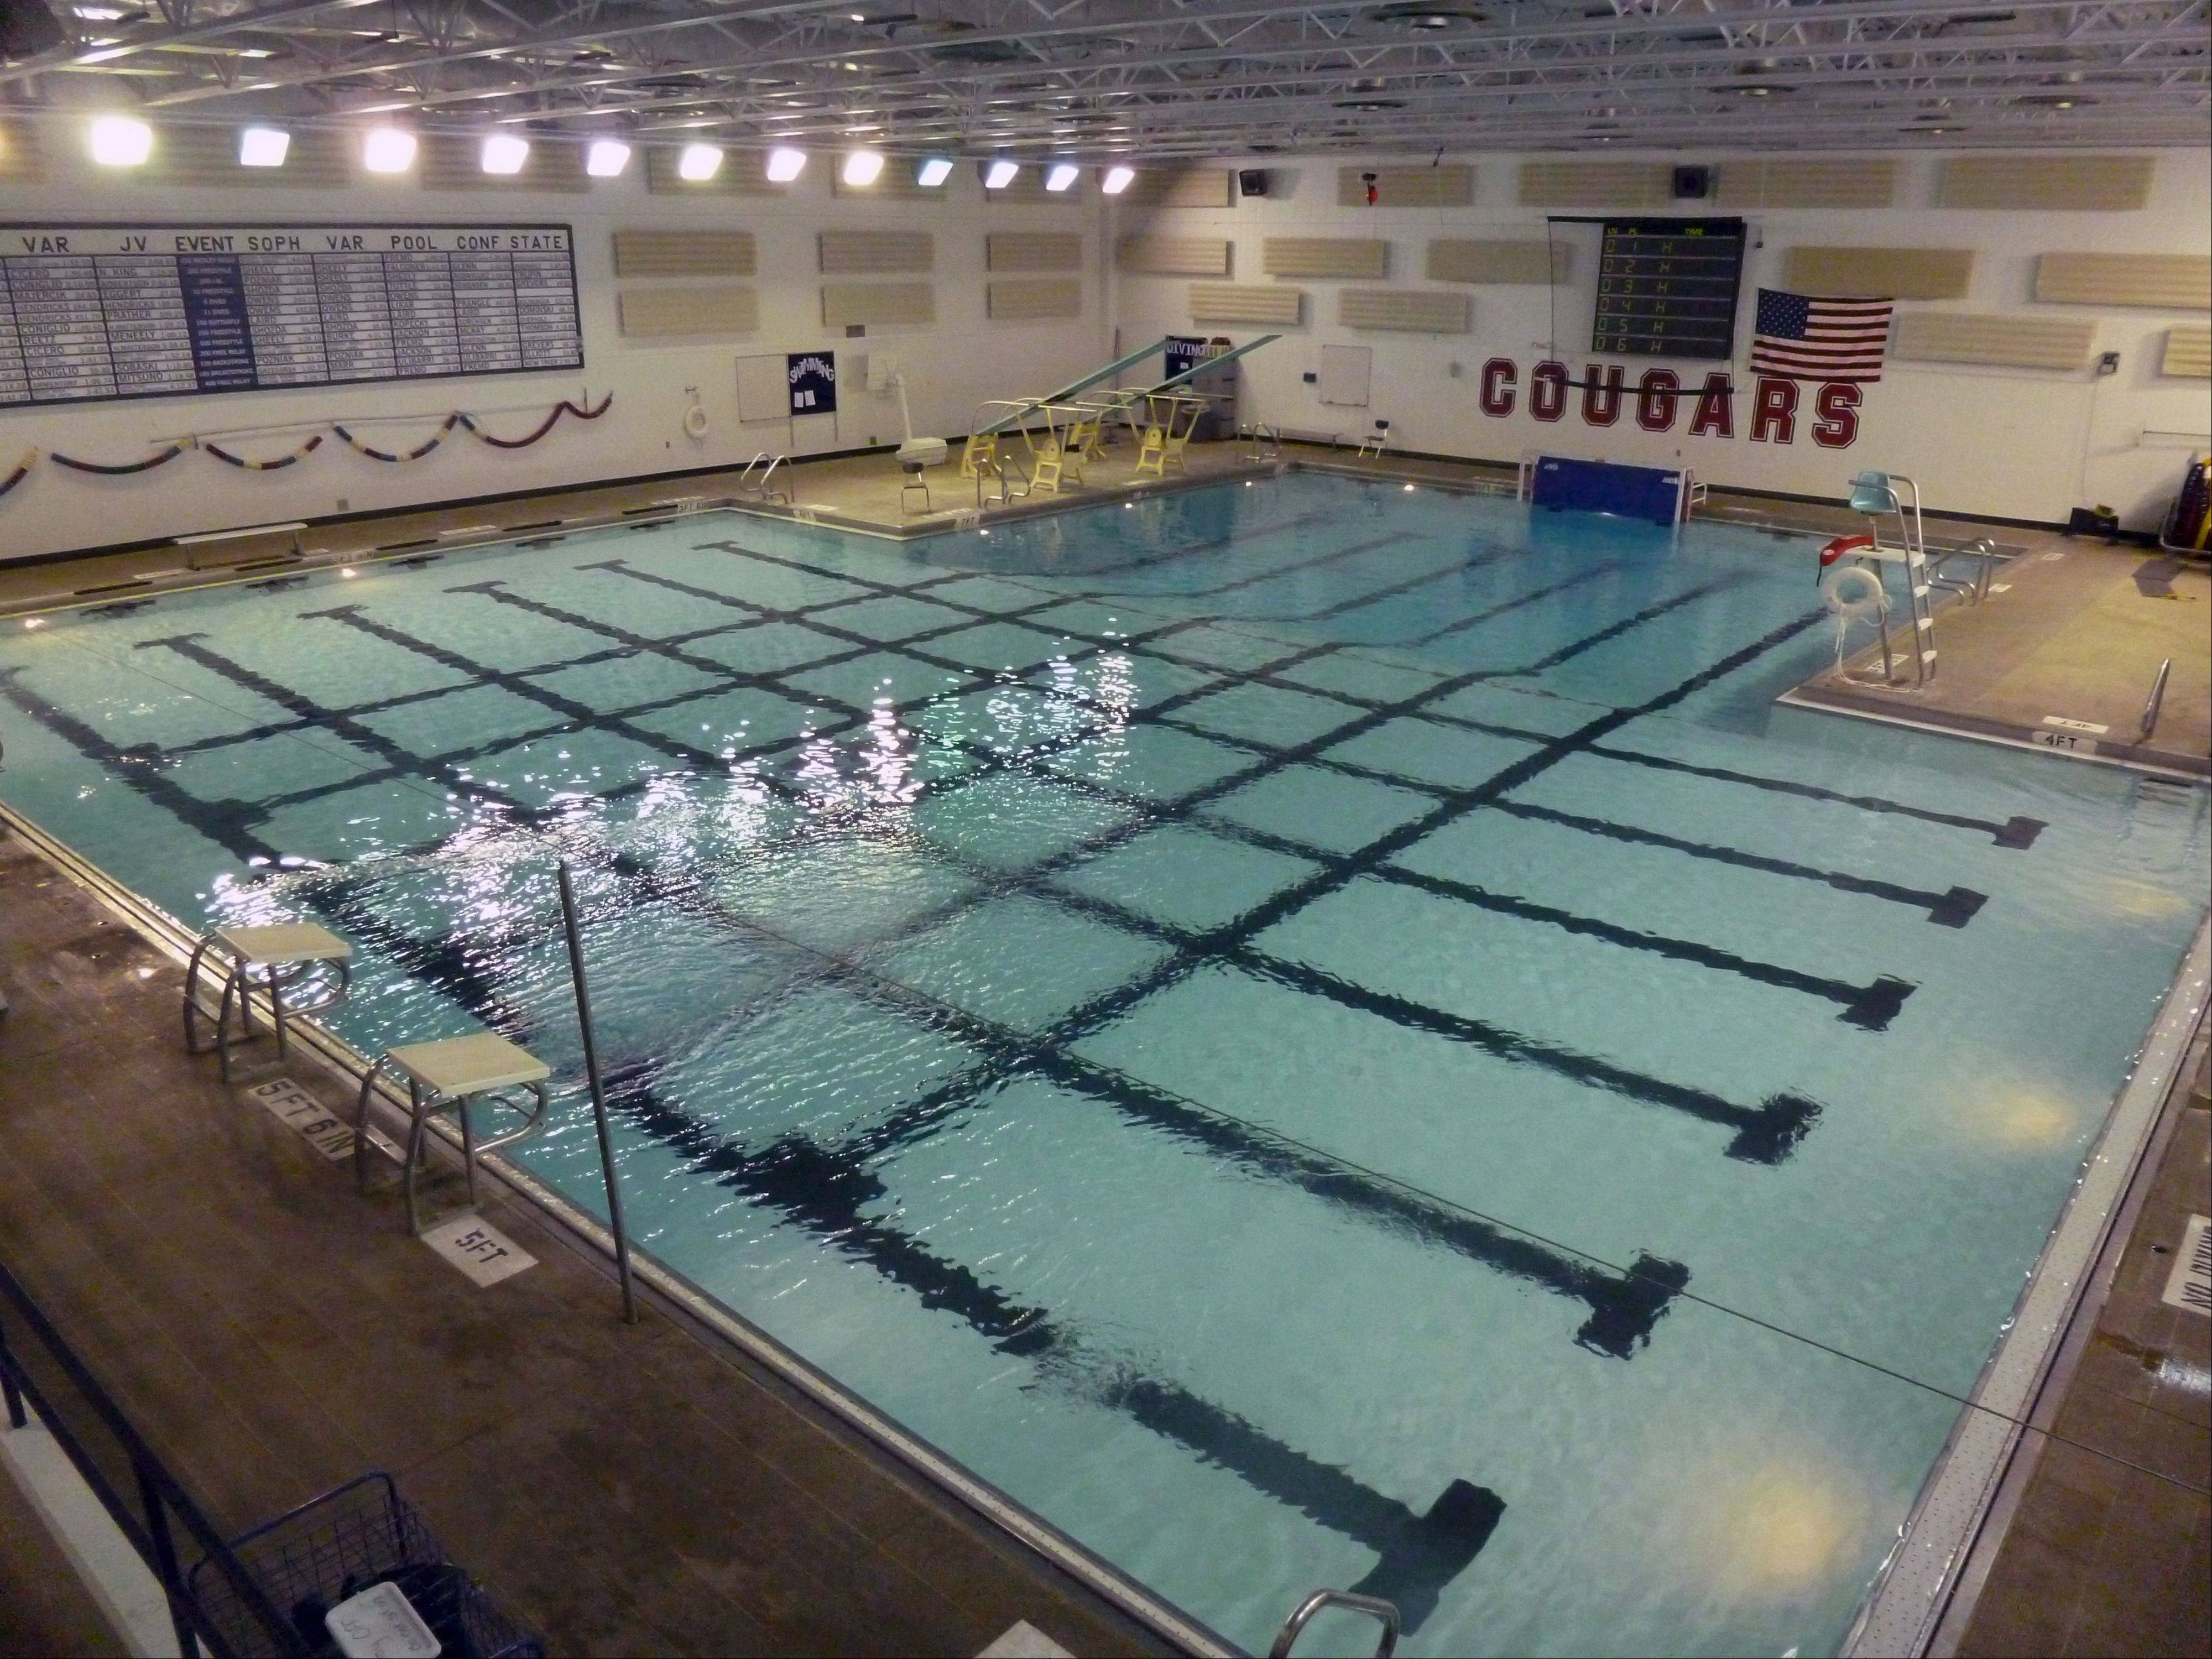 The swimming pool at Conant High School will be the first of District 211's five high schools to receive renovations in 2014. Coaches say this pool design, which is the same at all the schools, has prevented student athletes from properly training for competition.